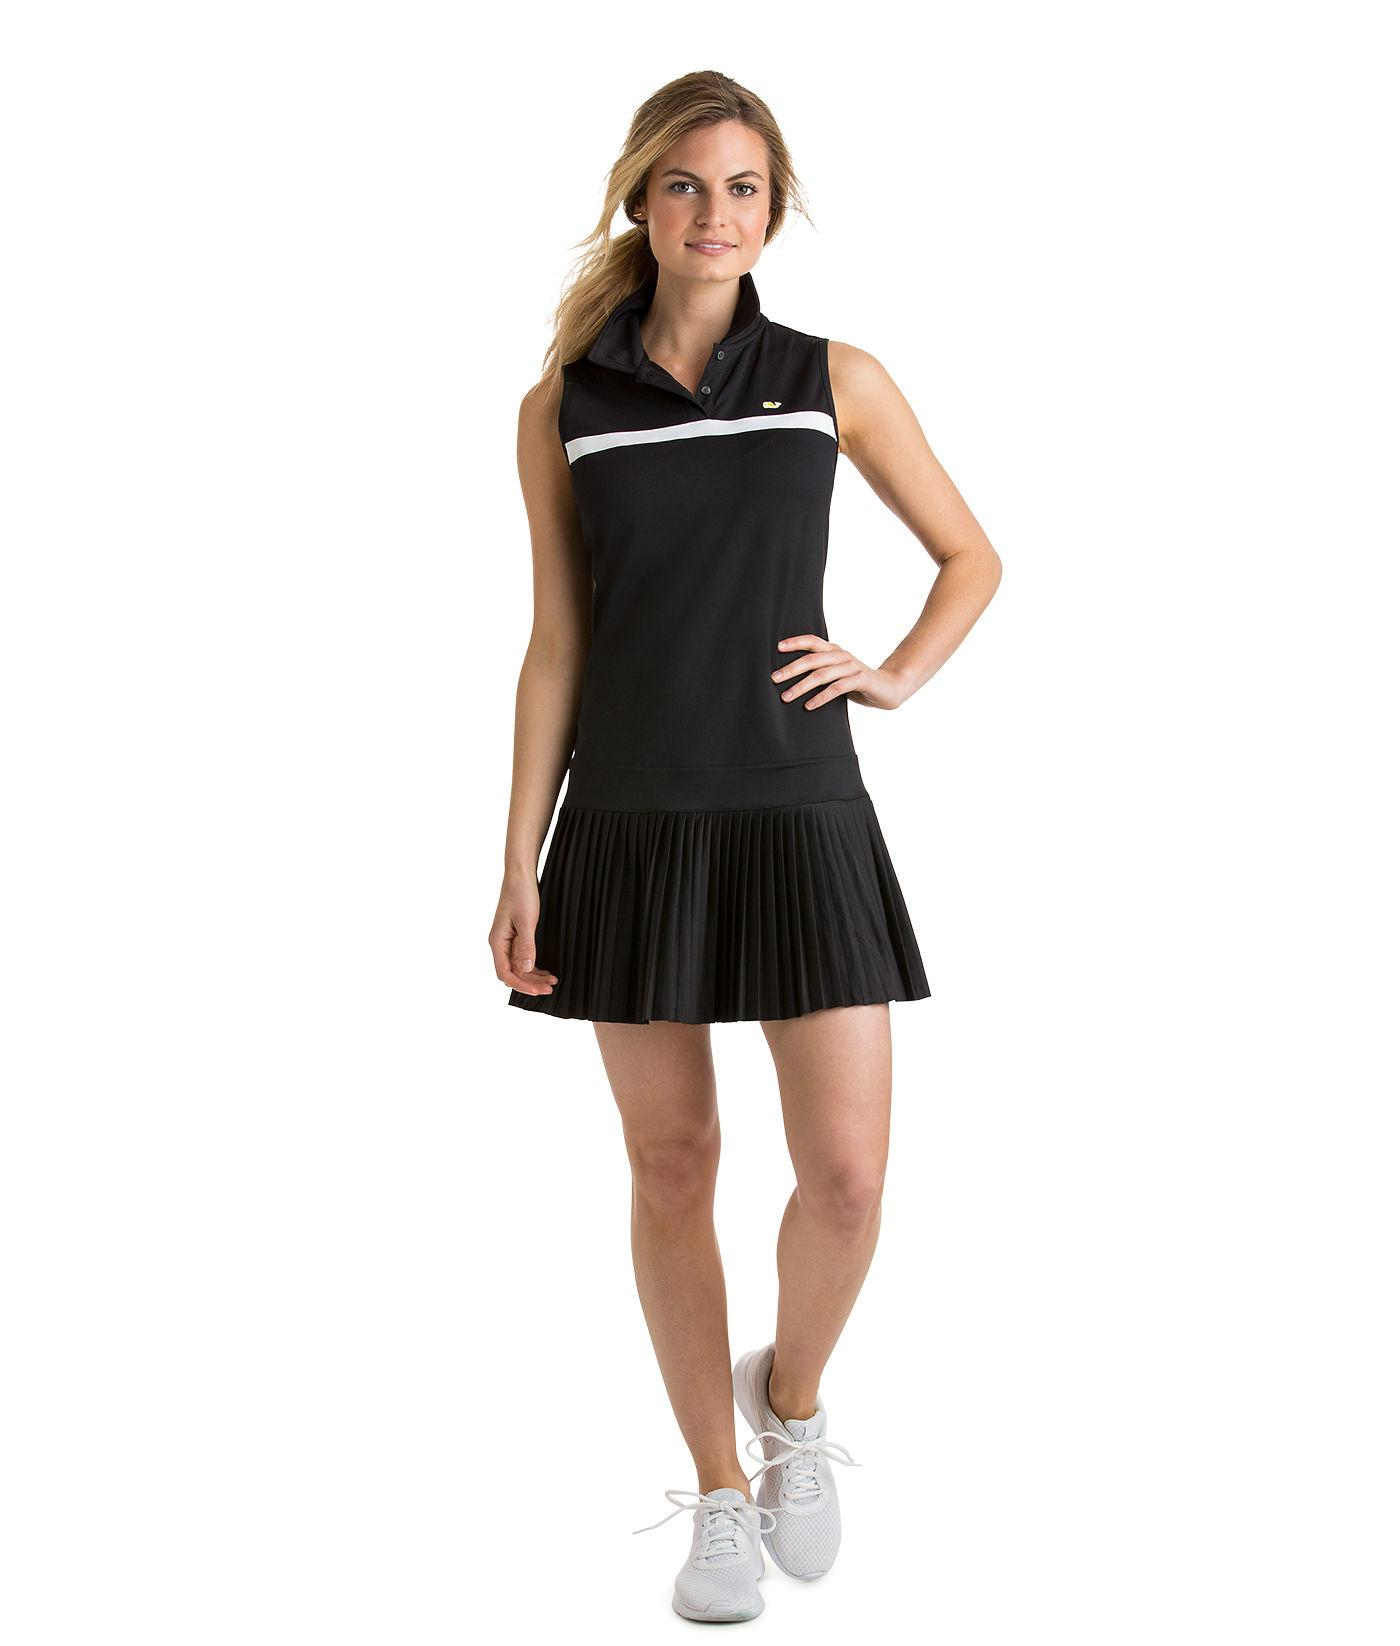 94e9fca0cc Vineyard Vines Sleeveless Pleated Tennis Dress in Black - Lyst